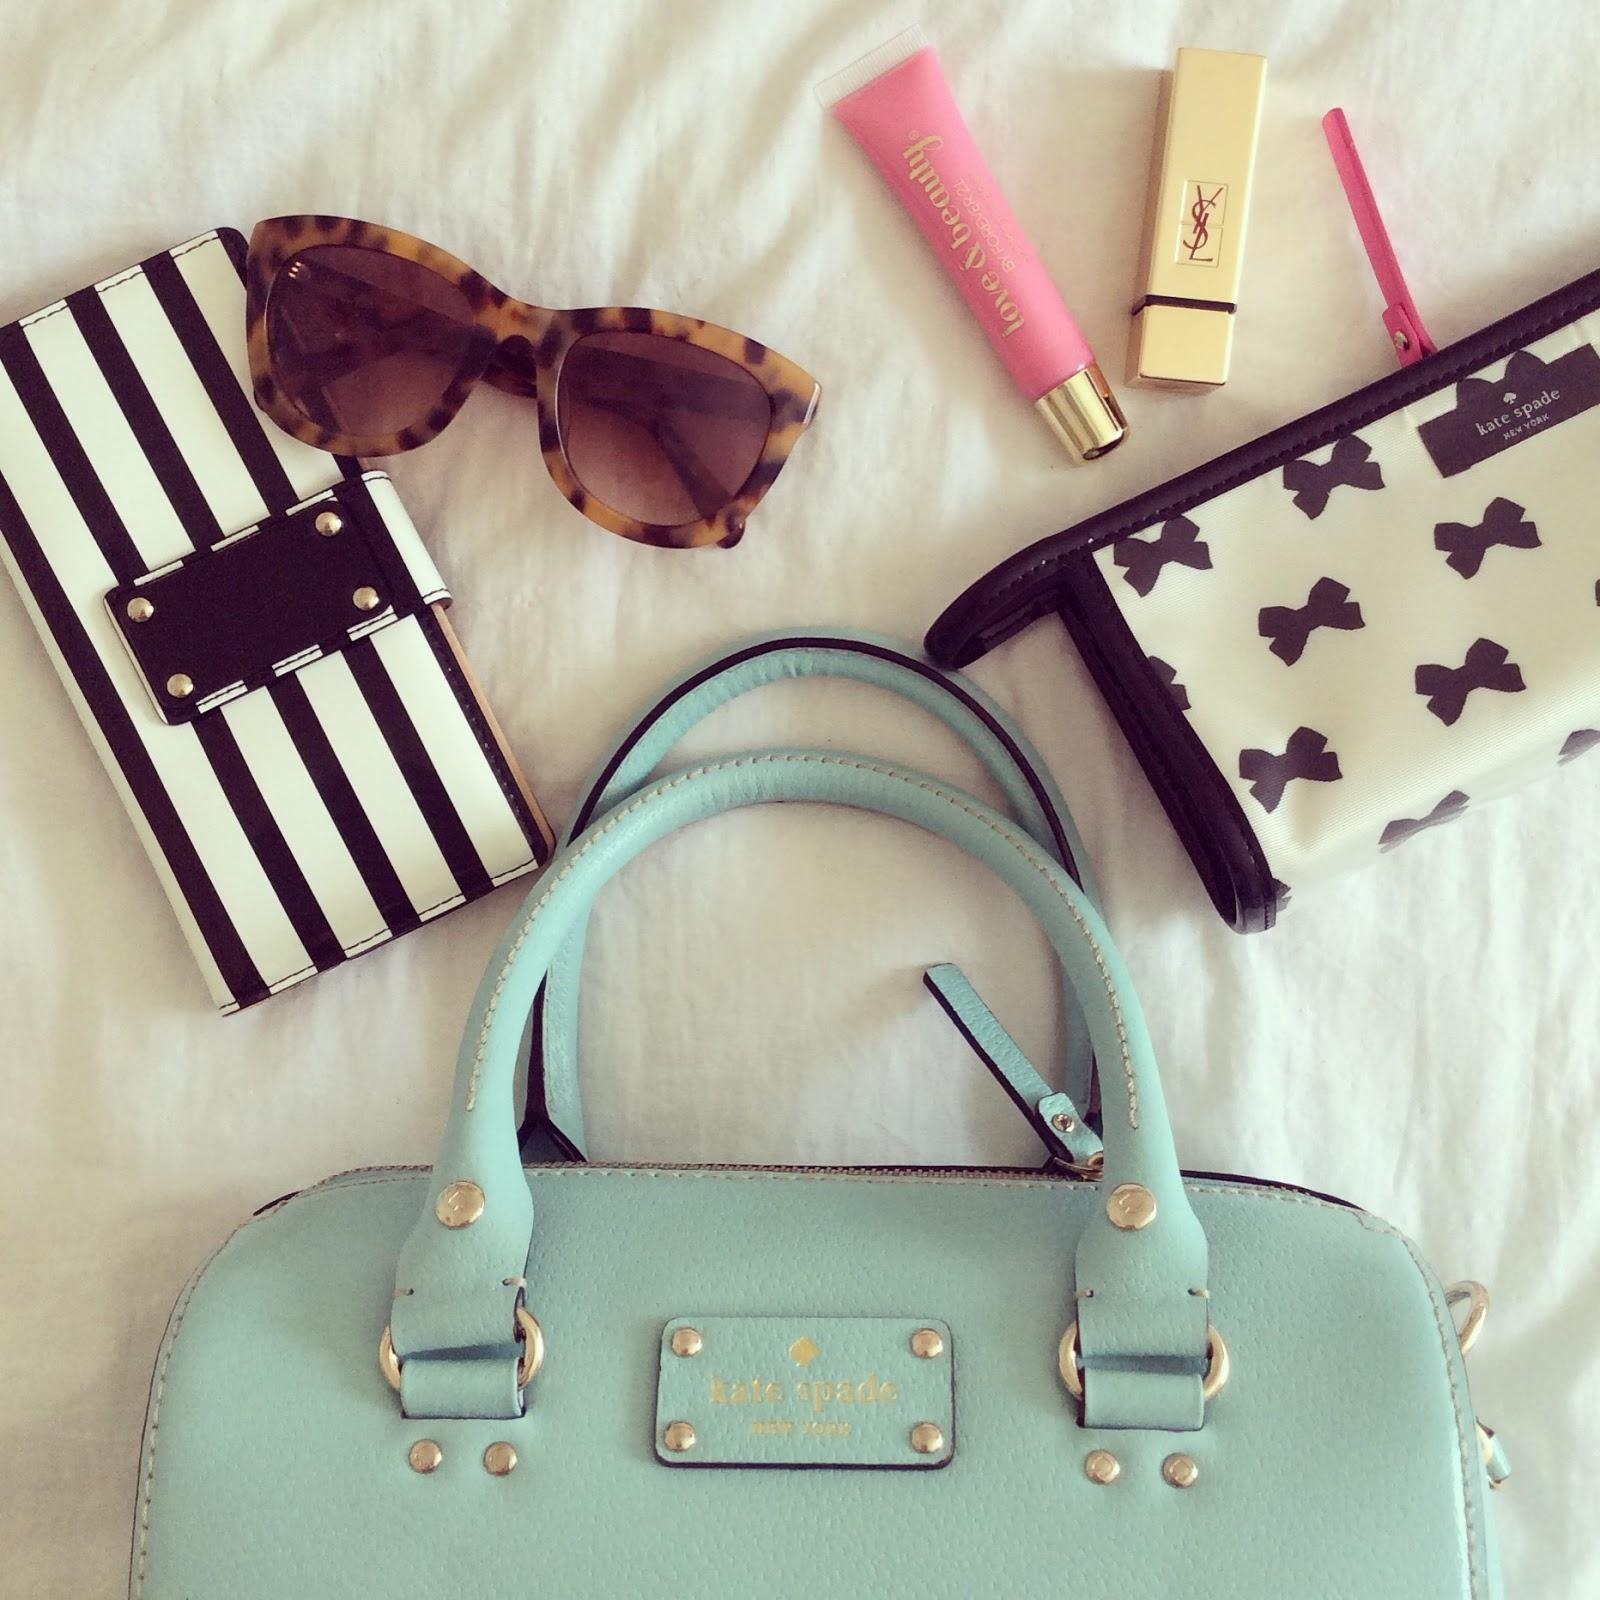 Up to 70% Off Kate Spade New York Handbags, Shoes and more @ 6PM.com